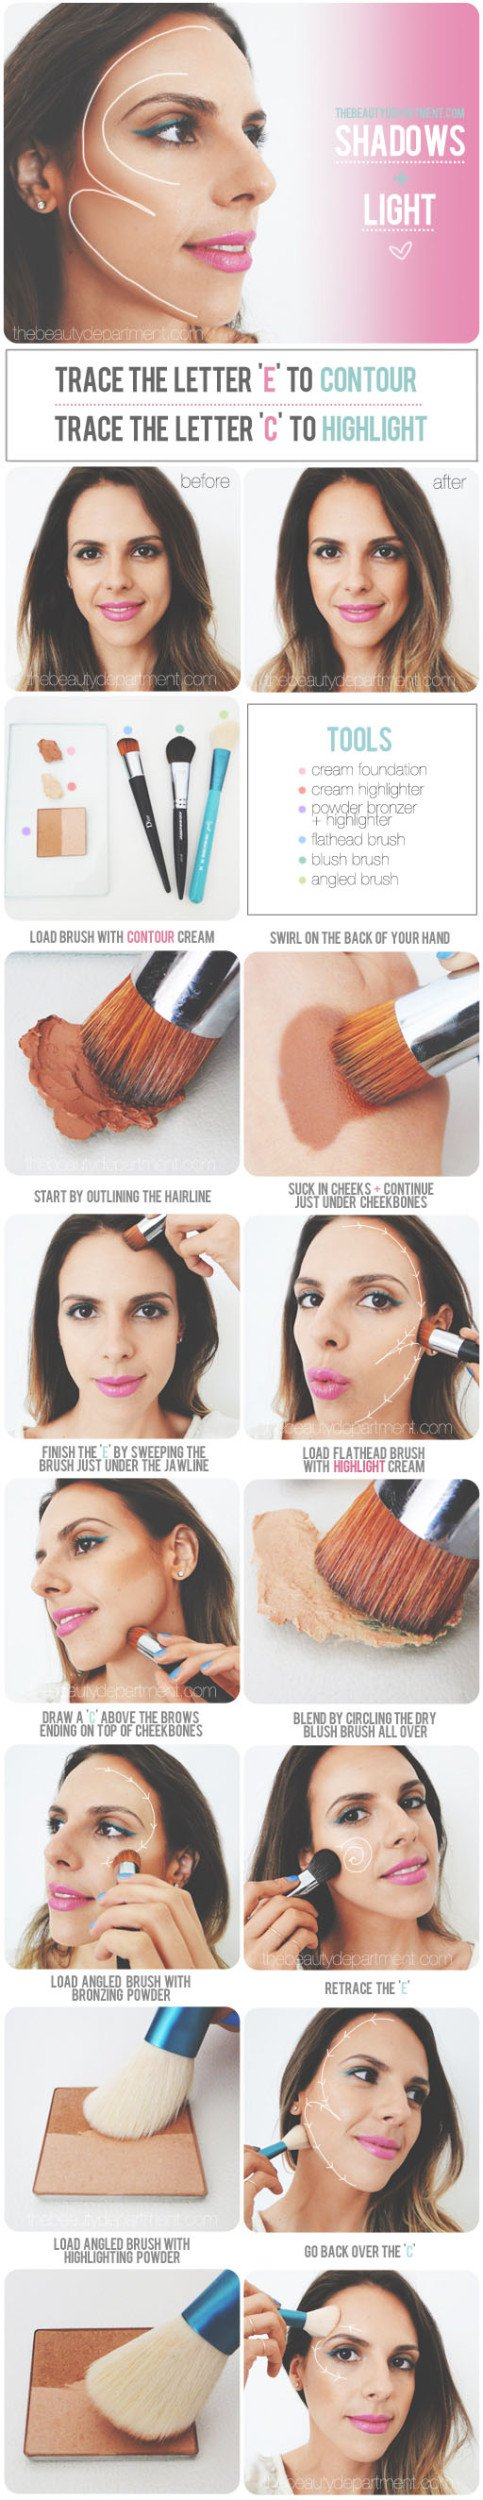 12 Life Changing Beauty Hacks To Try Immediately